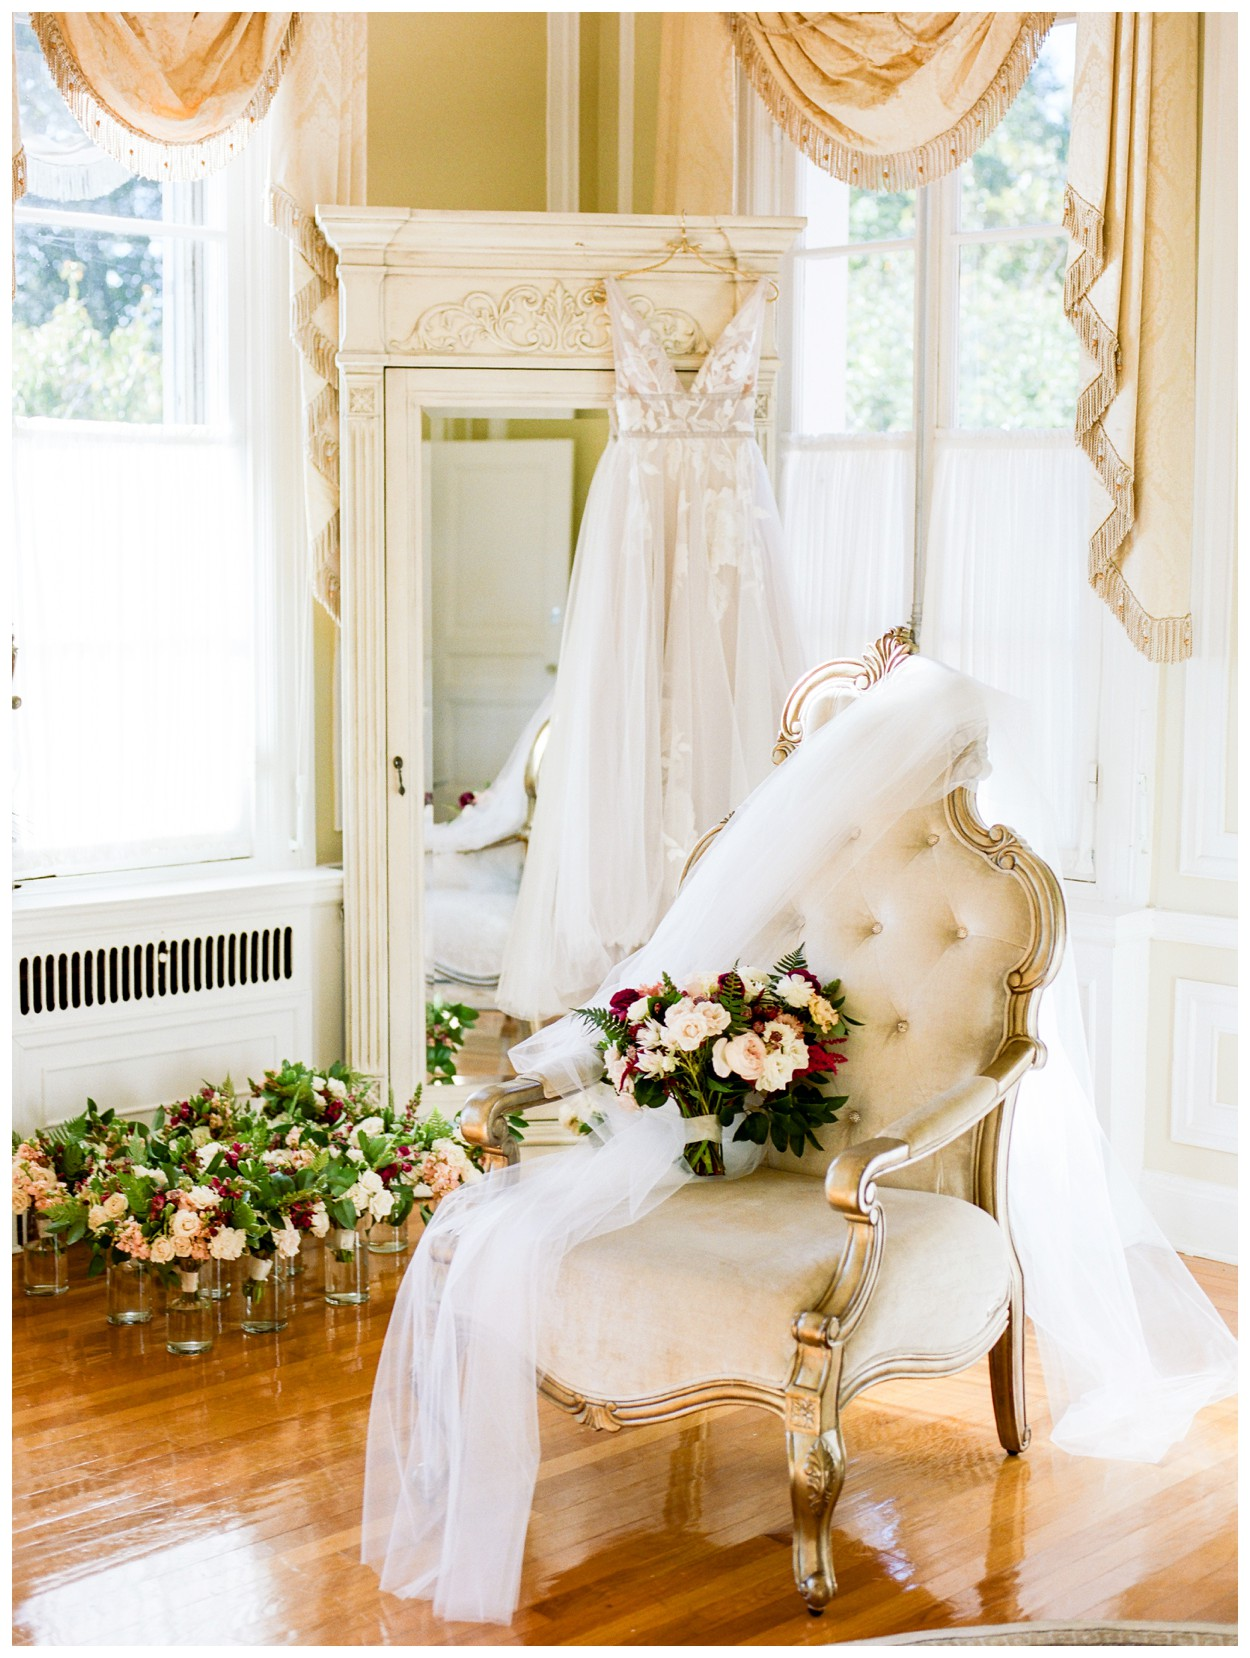 Sun drenched fall wedding in shades of pink at Oxon Hill Manor in Maryland beautiful bridal suite by fine art wedding photographer Lissa Ryan Photography